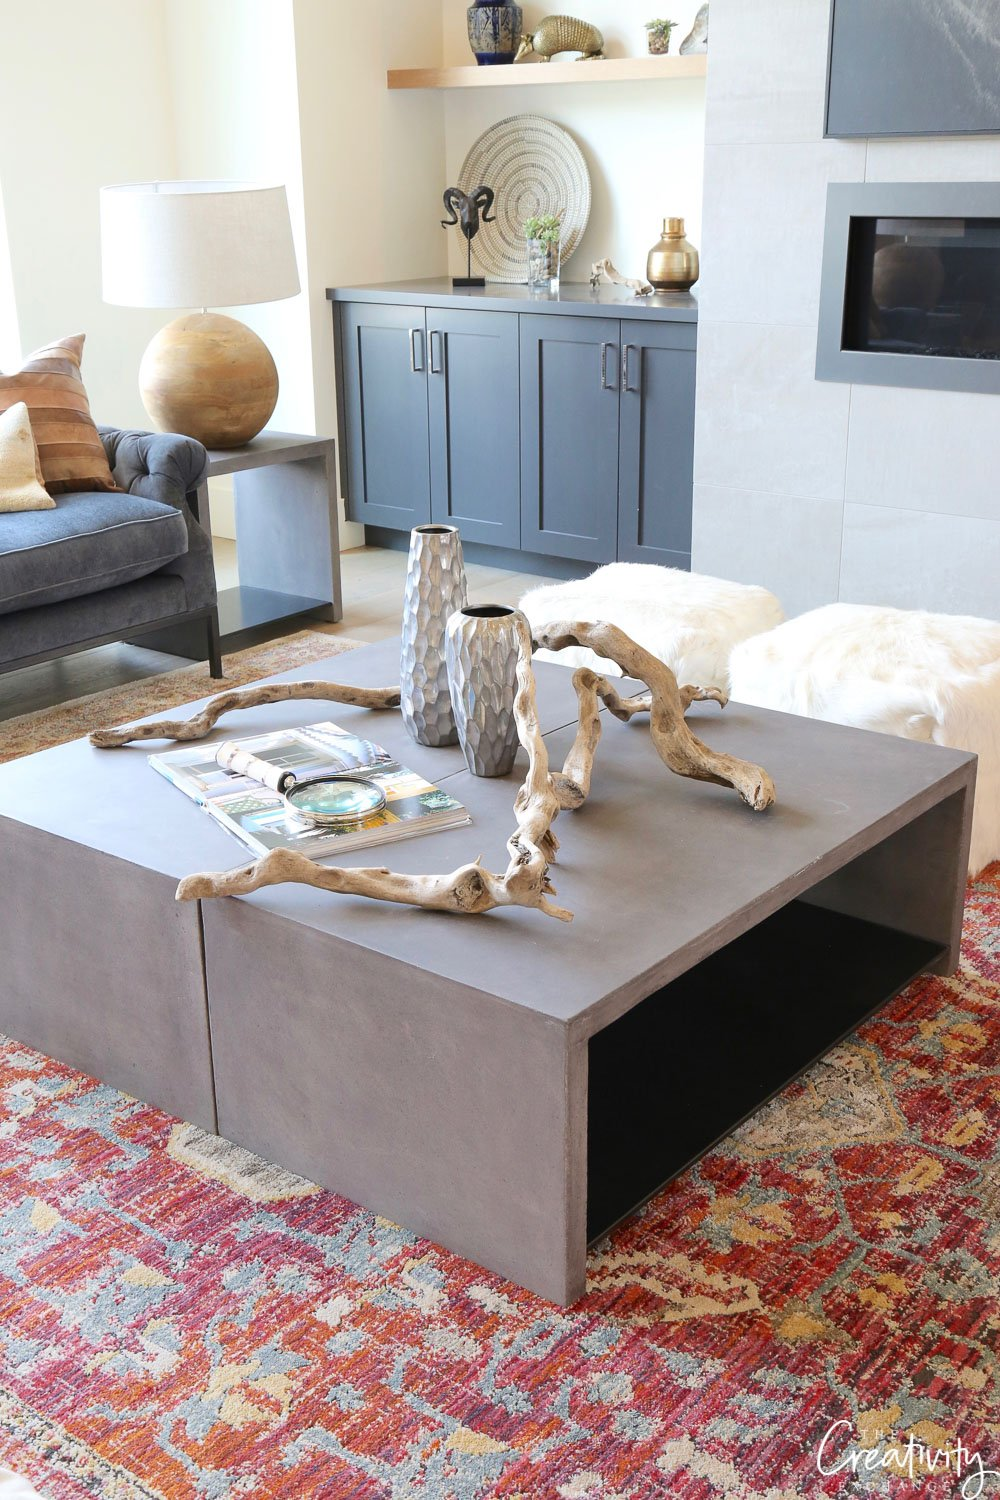 Tips for choosing the perfect coffee table.